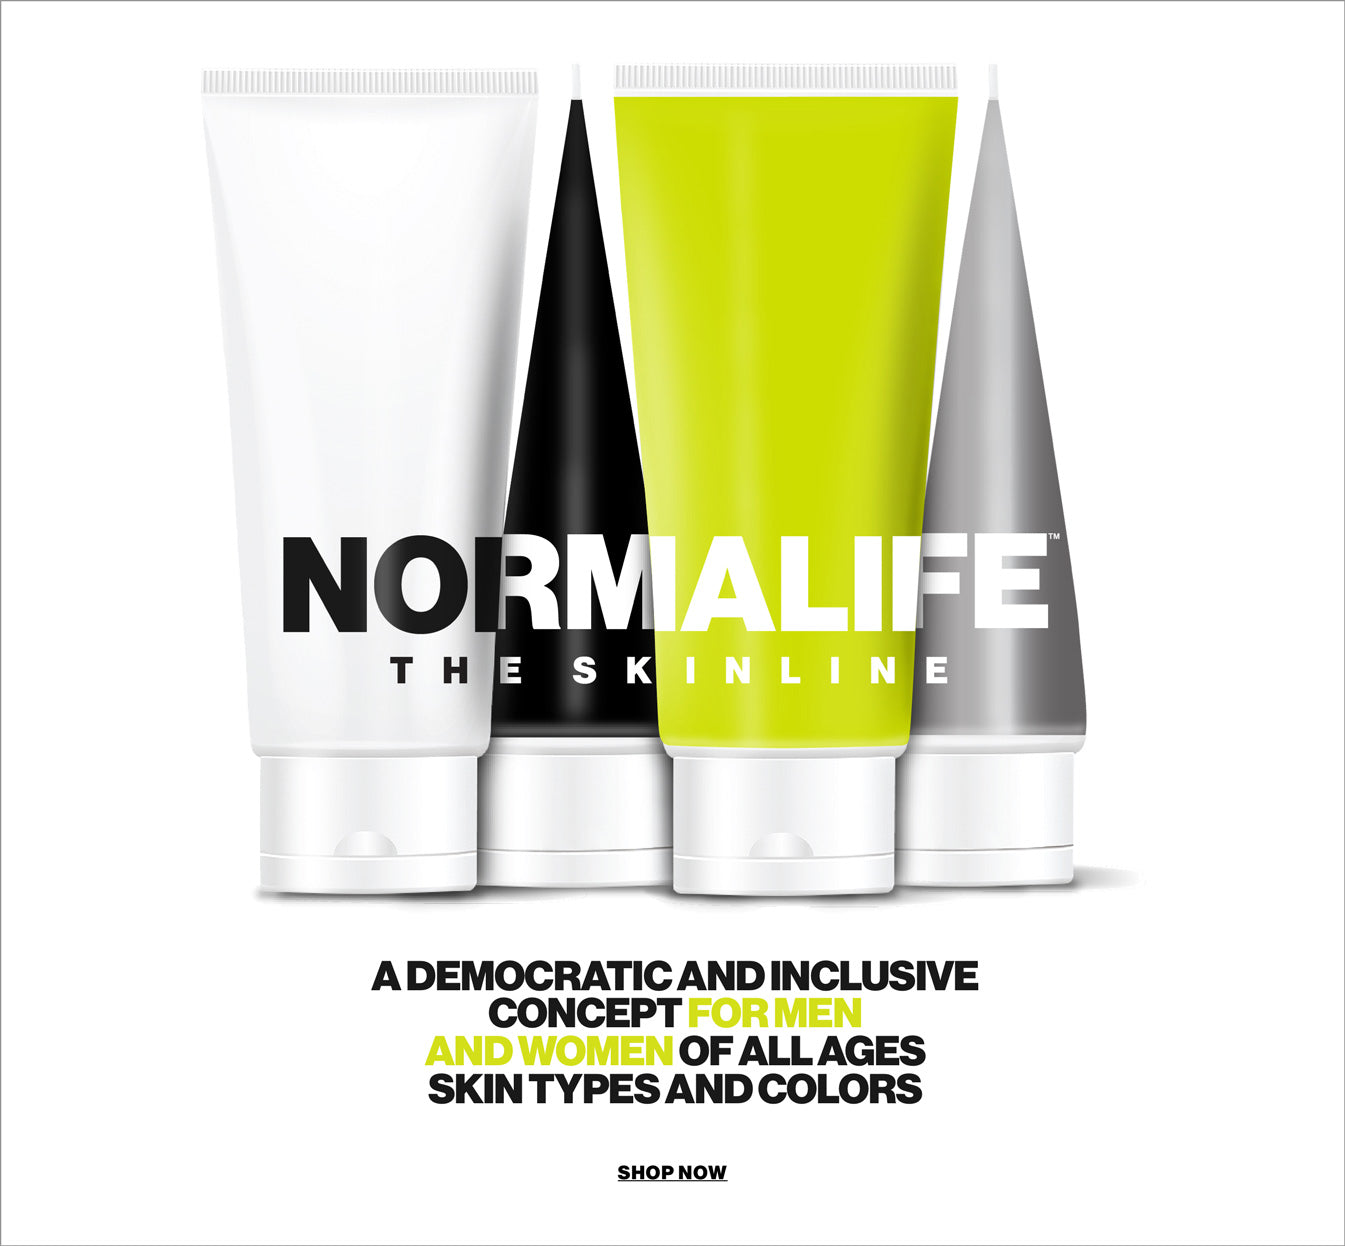 A democratic and inclusive concept for men and women of all ages skin types and colors